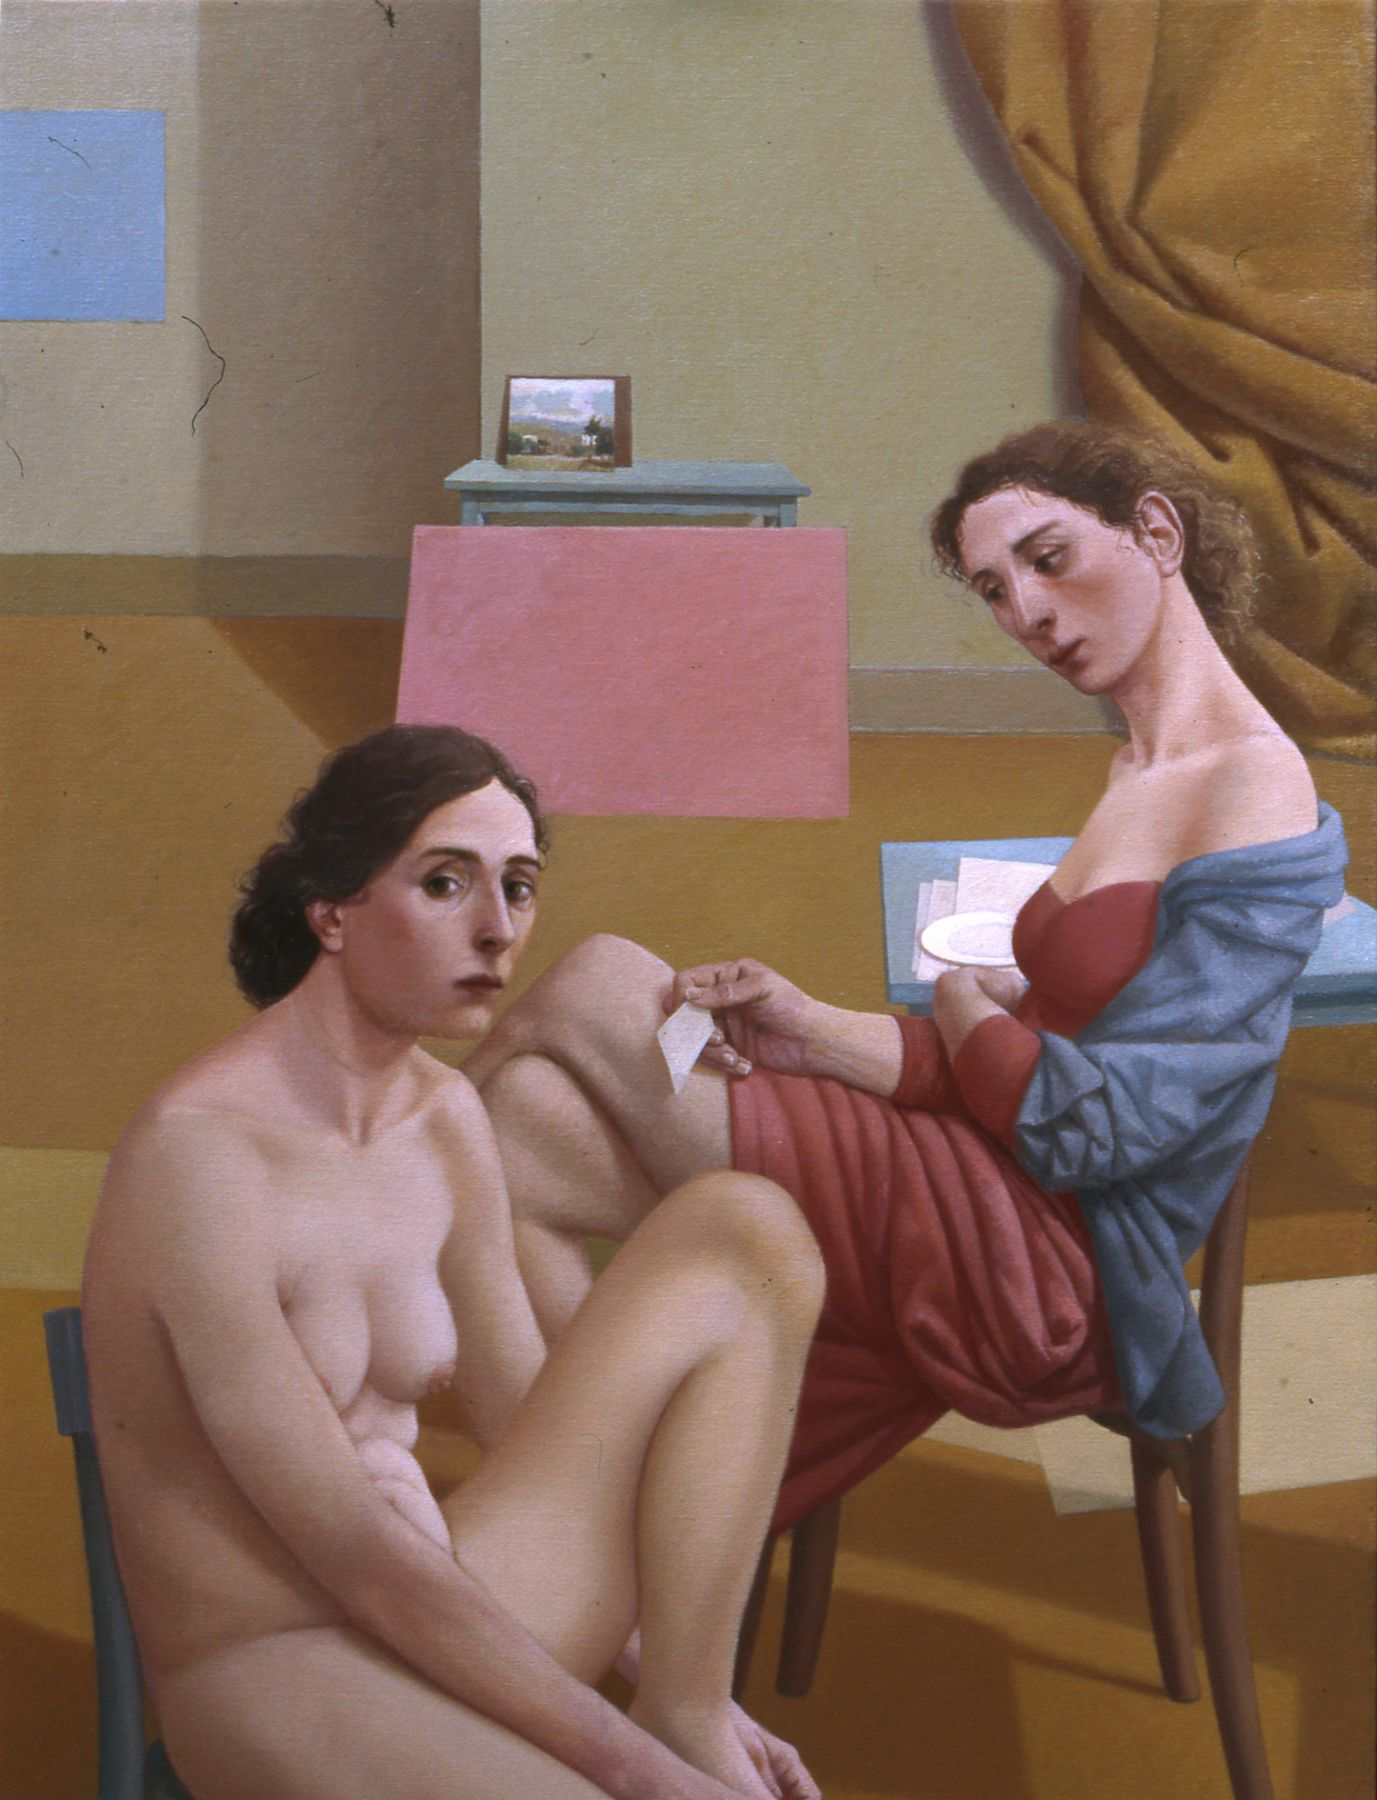 alan feltus, The Fabro's Wife and the Girl From Nowhere, 2011, oil on linen, 43 1/4 x 31 7/8 inches